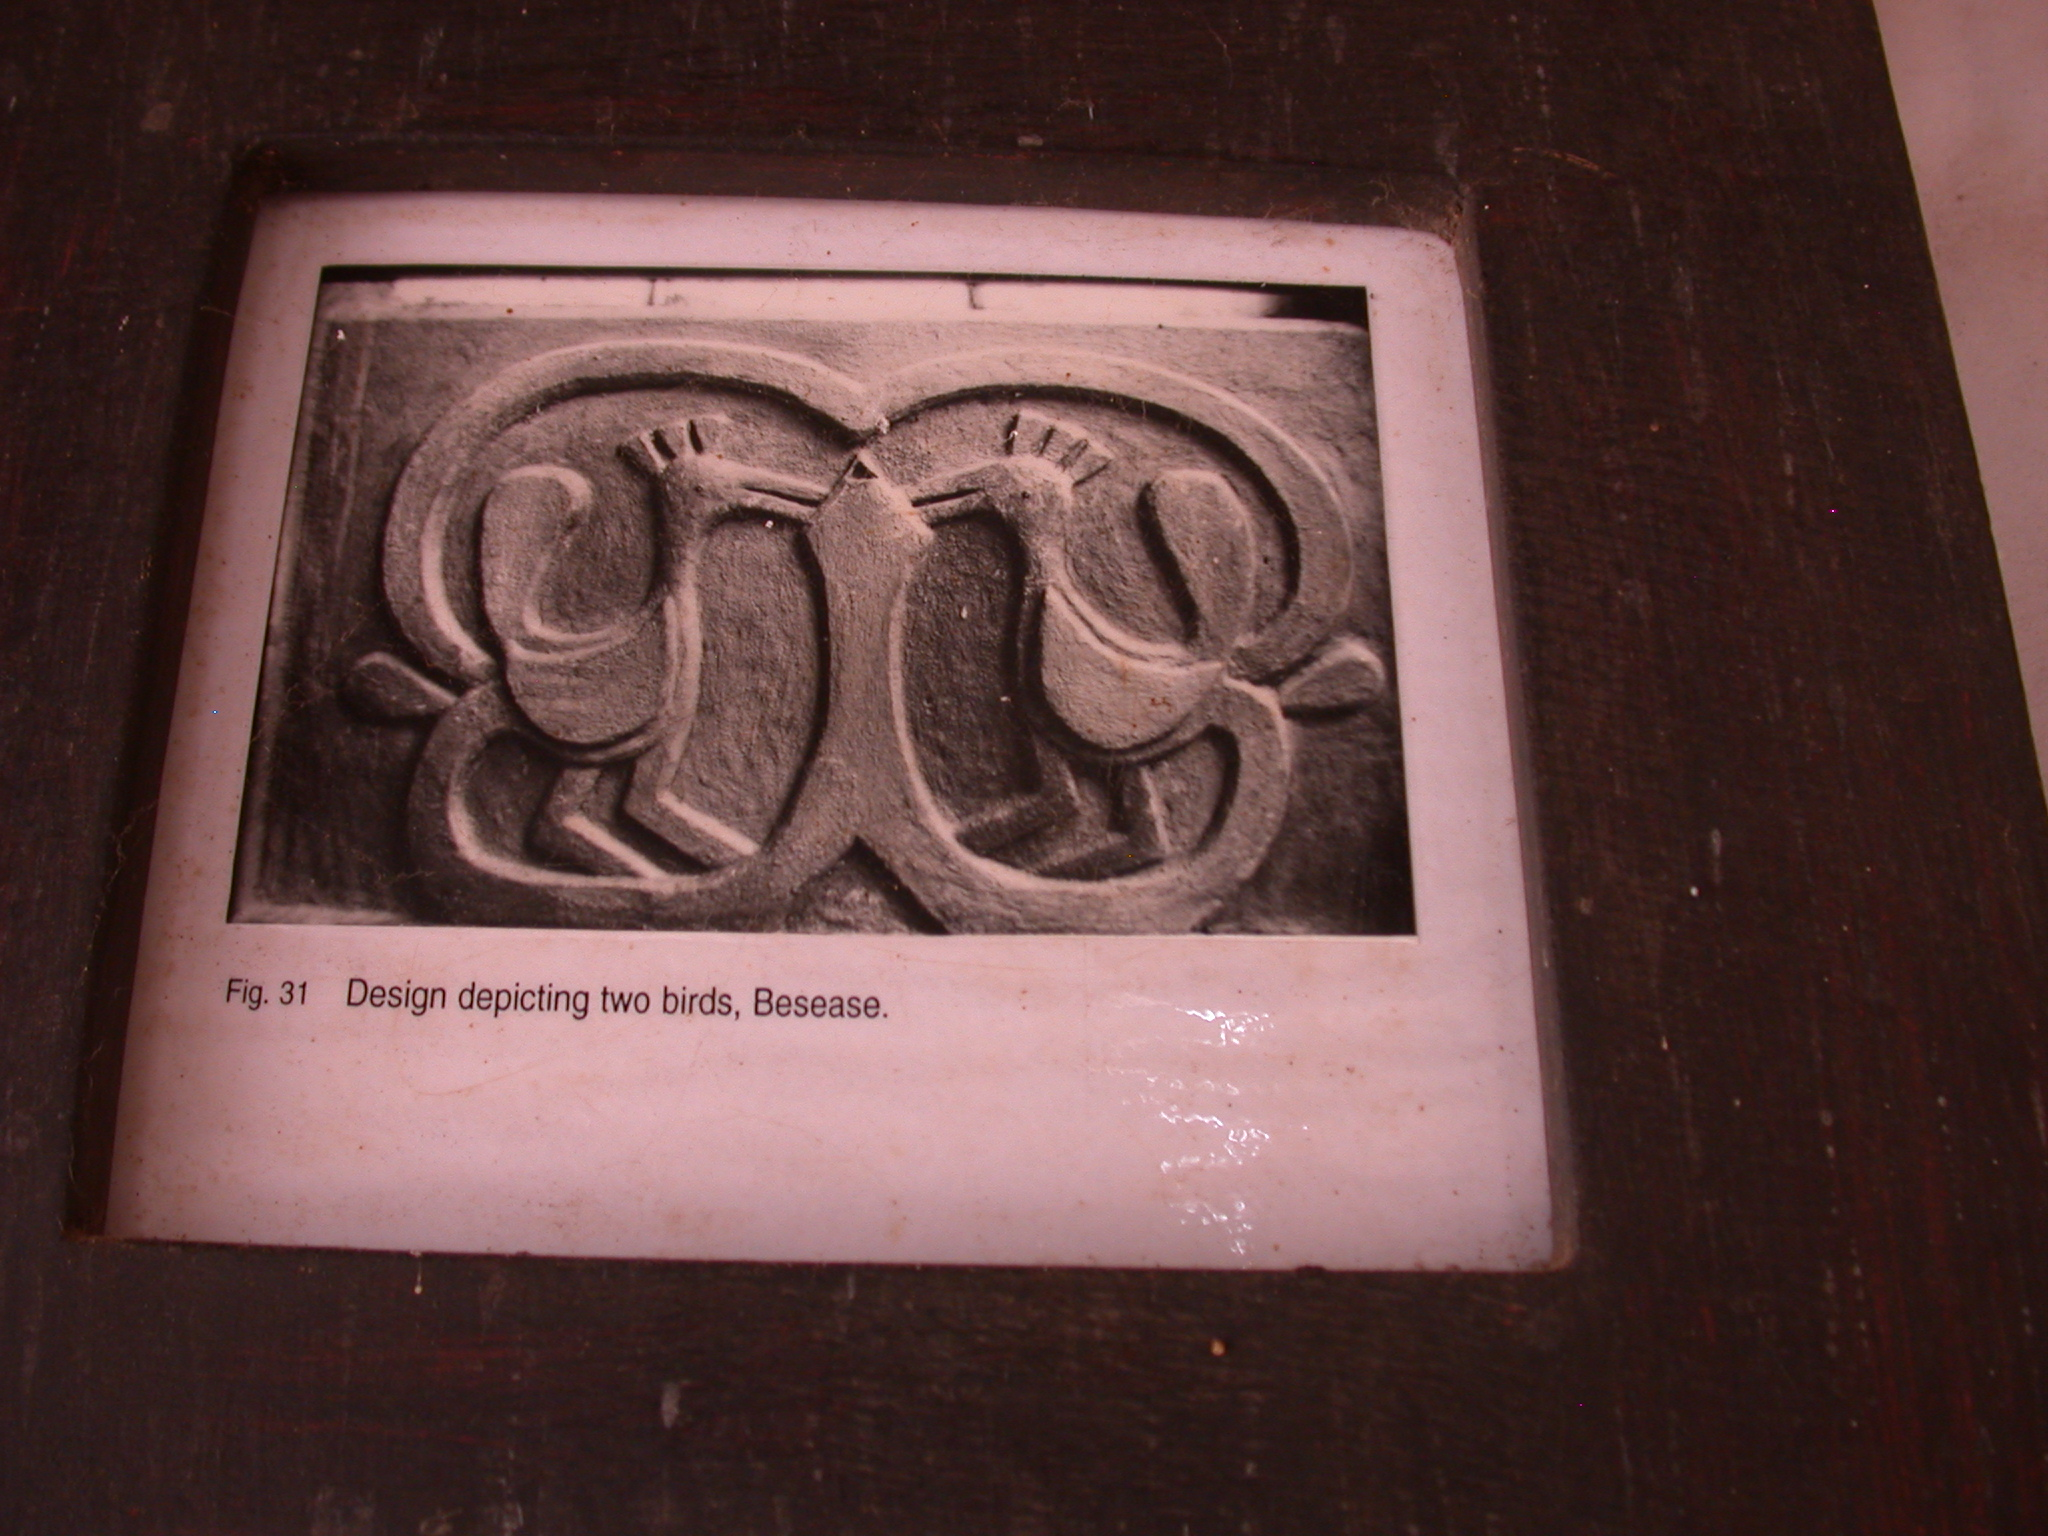 Photograph of Design Depicting Two Birds at Besease Shrine, Asante Traditional Shrine at Ejisu-Besease, Ghana